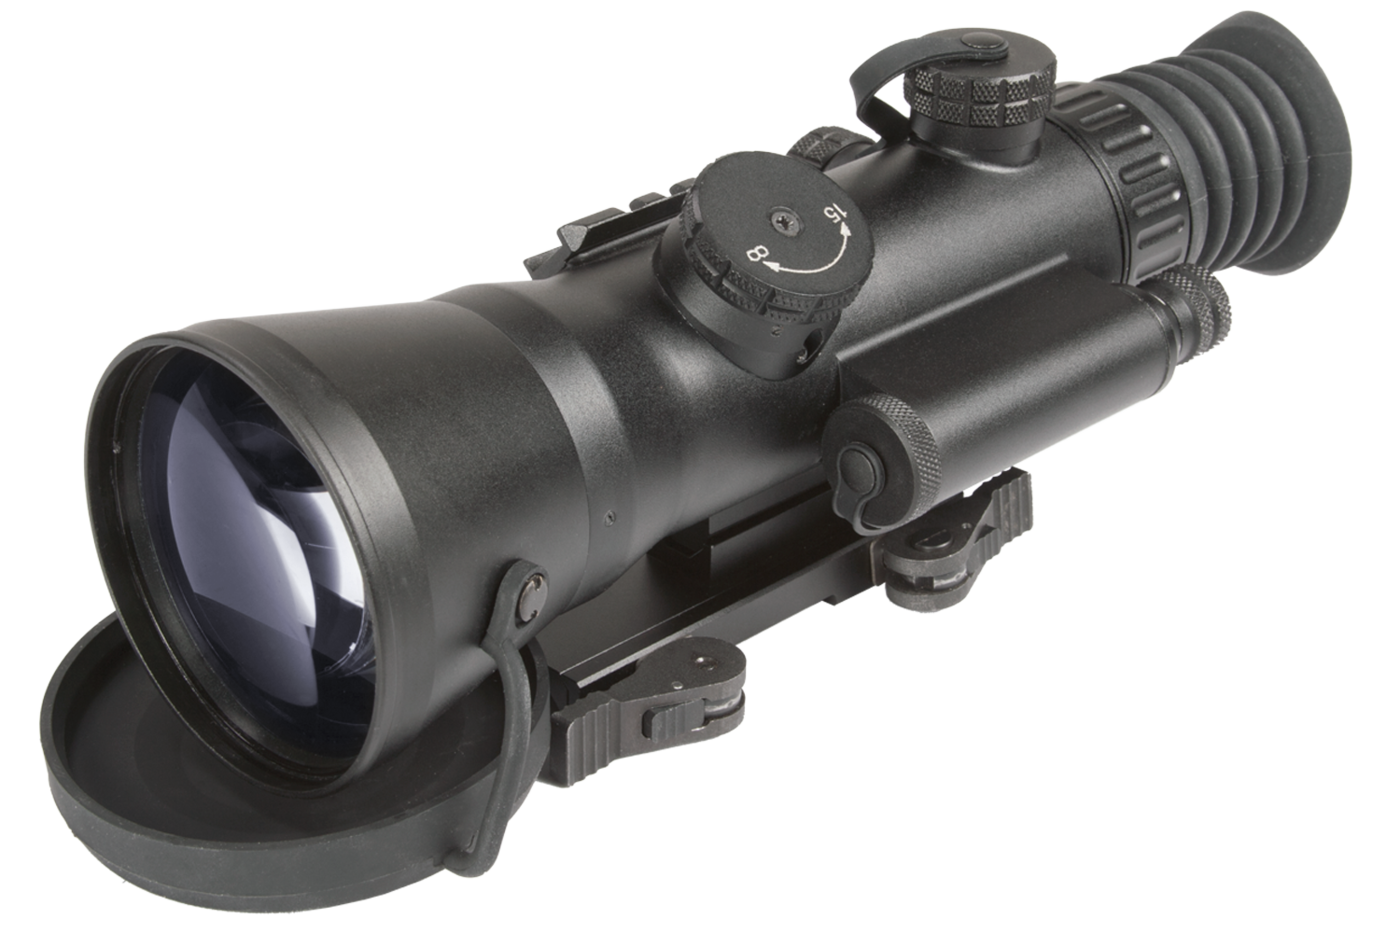 PRG Defense Wolverine 4 NL2 Nightvision Scope 4x Gen 2+ Level 2 with IR